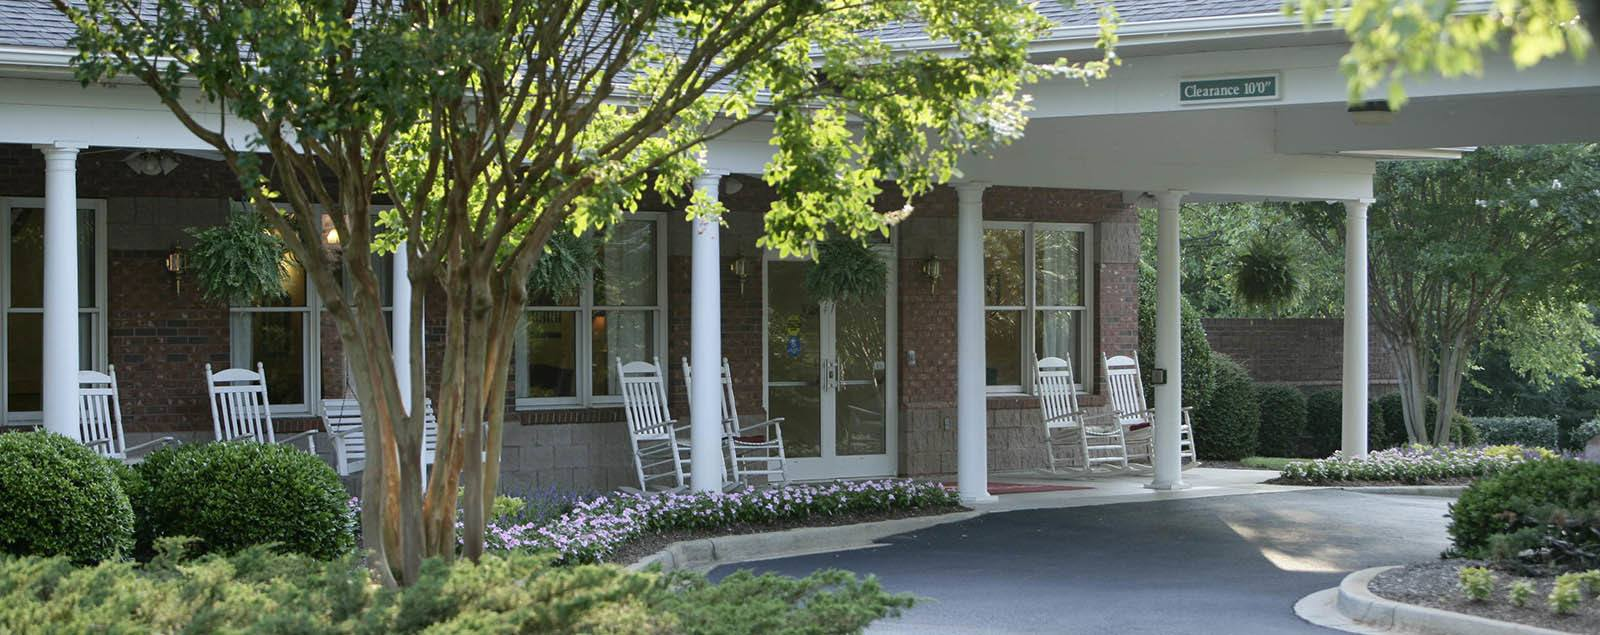 Schedule a senior living tour in Rock Hill